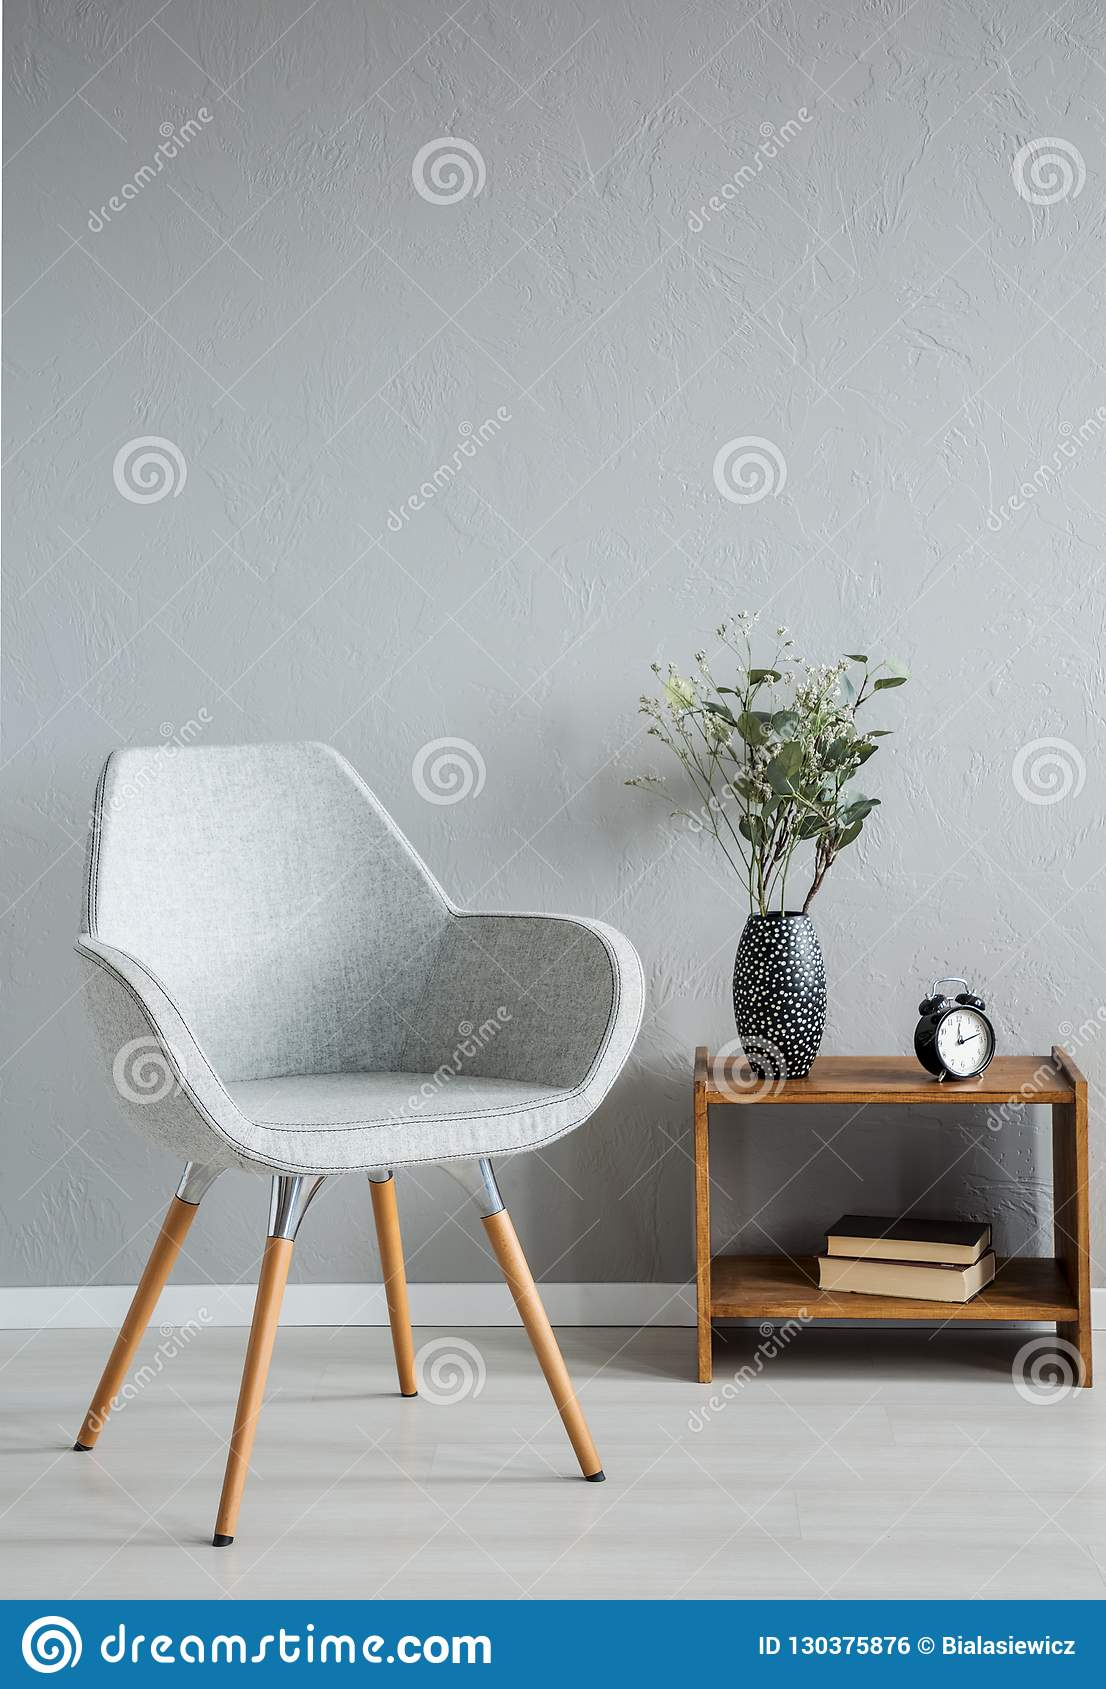 Stylish grey chair next to cabinet with vase and flowers in modern office interior, real photo